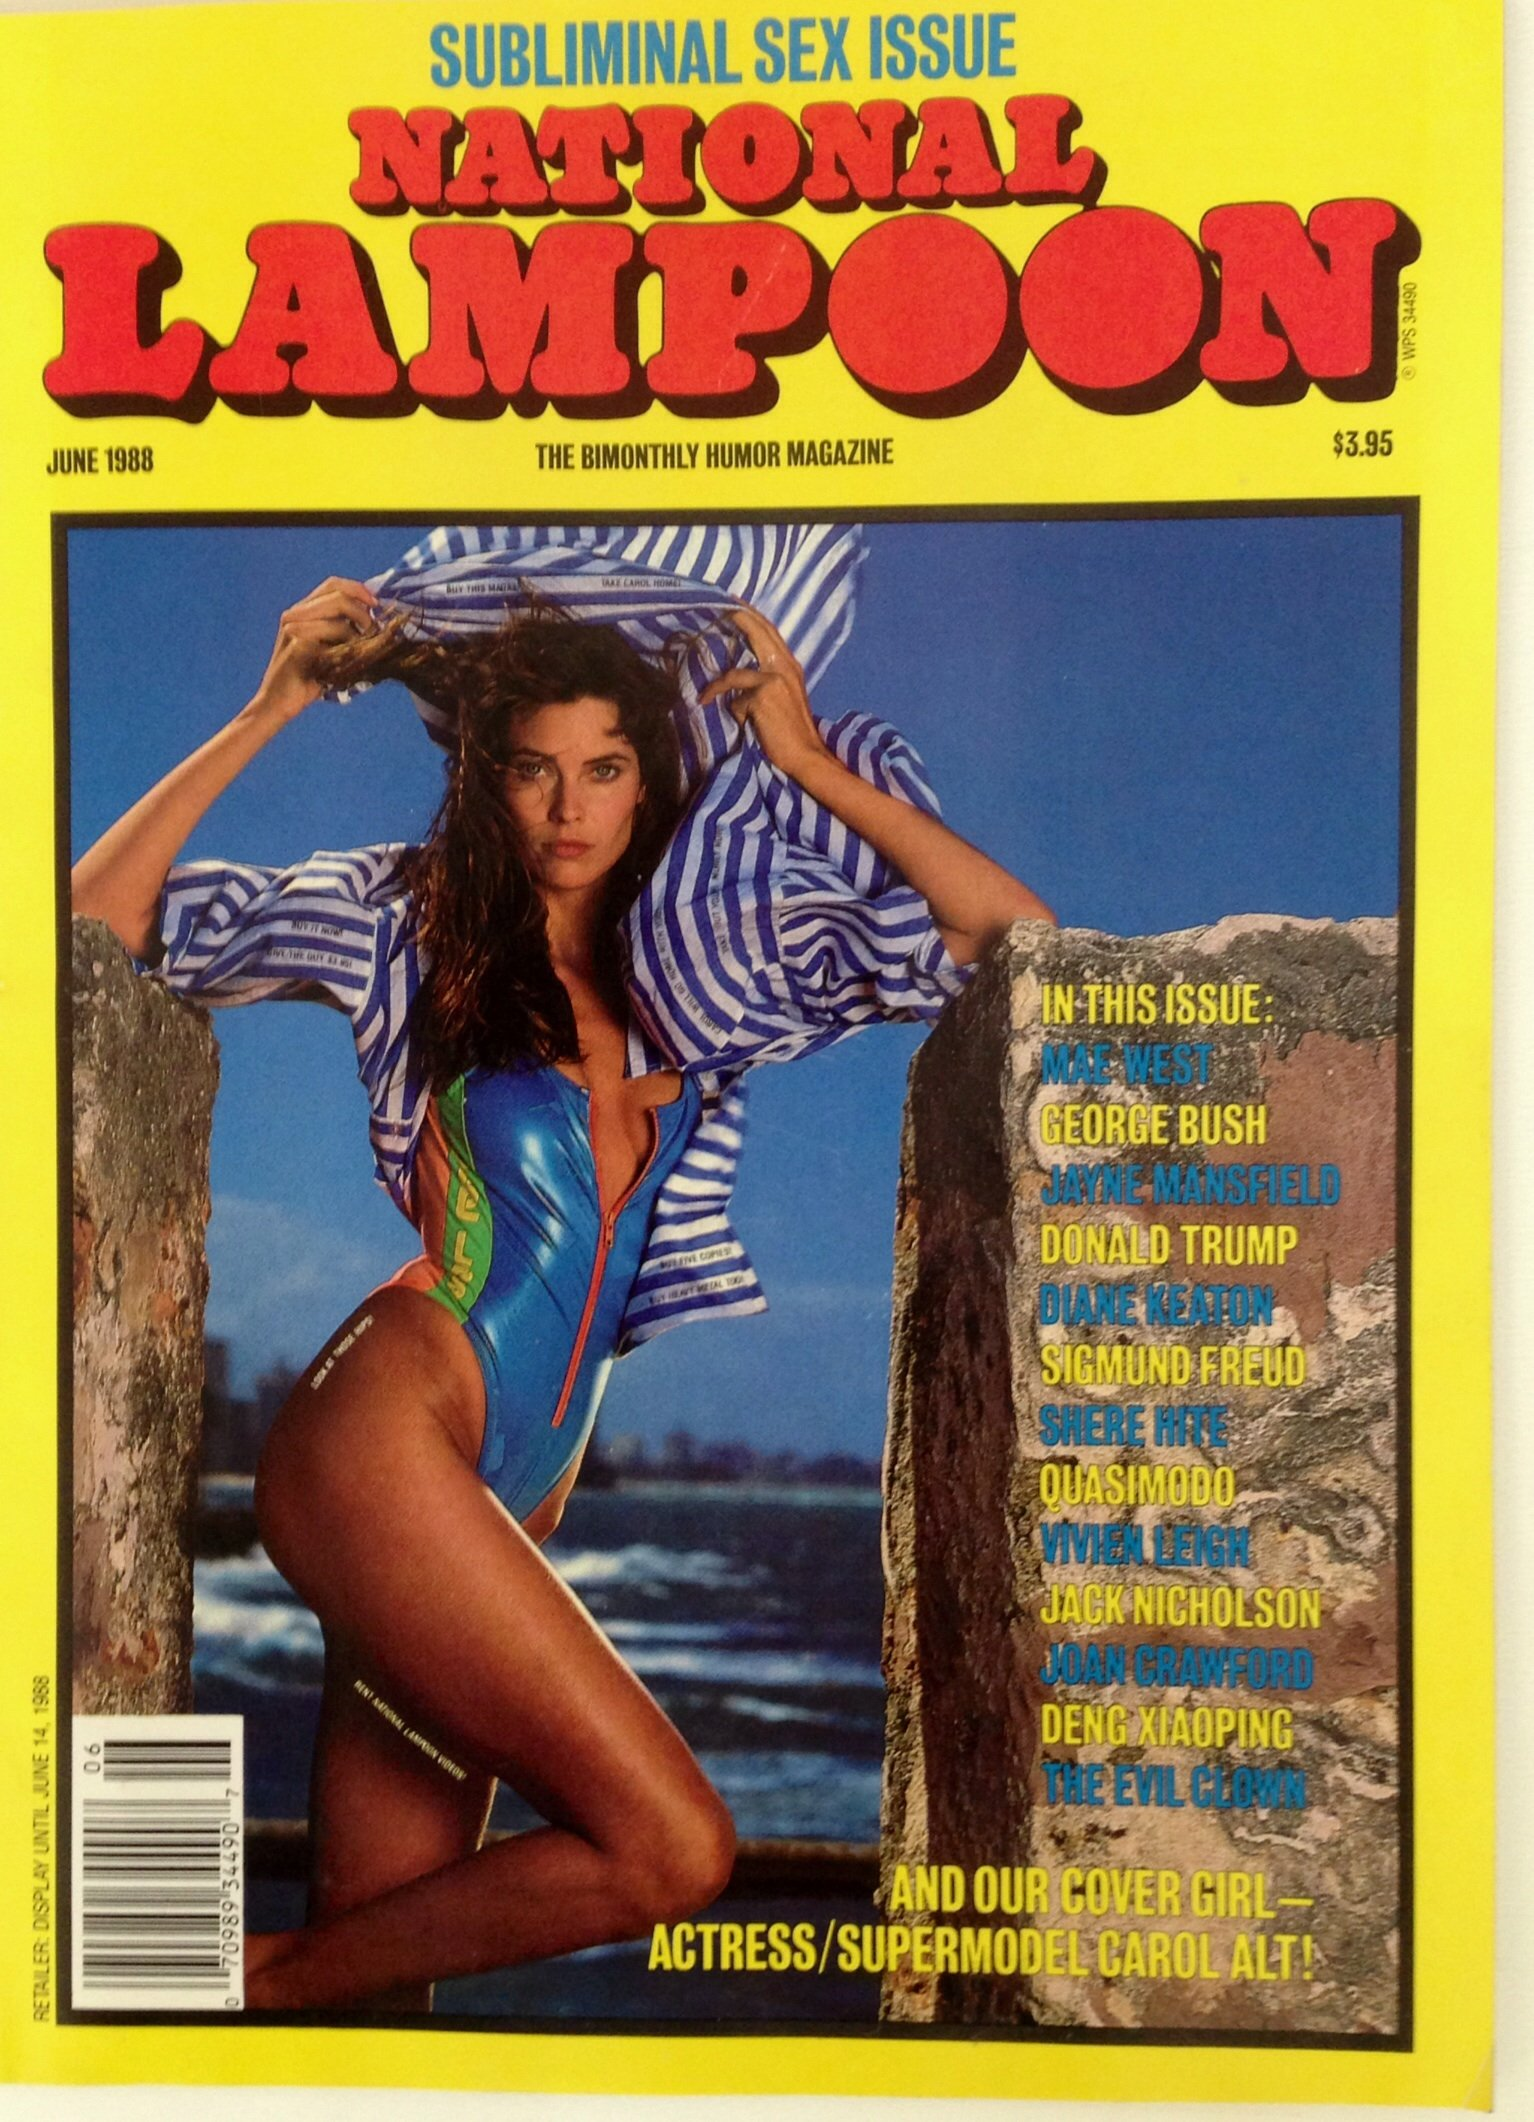 National Lampoon June 1988 (Subliminal Sex Issue) Paperback – 1988